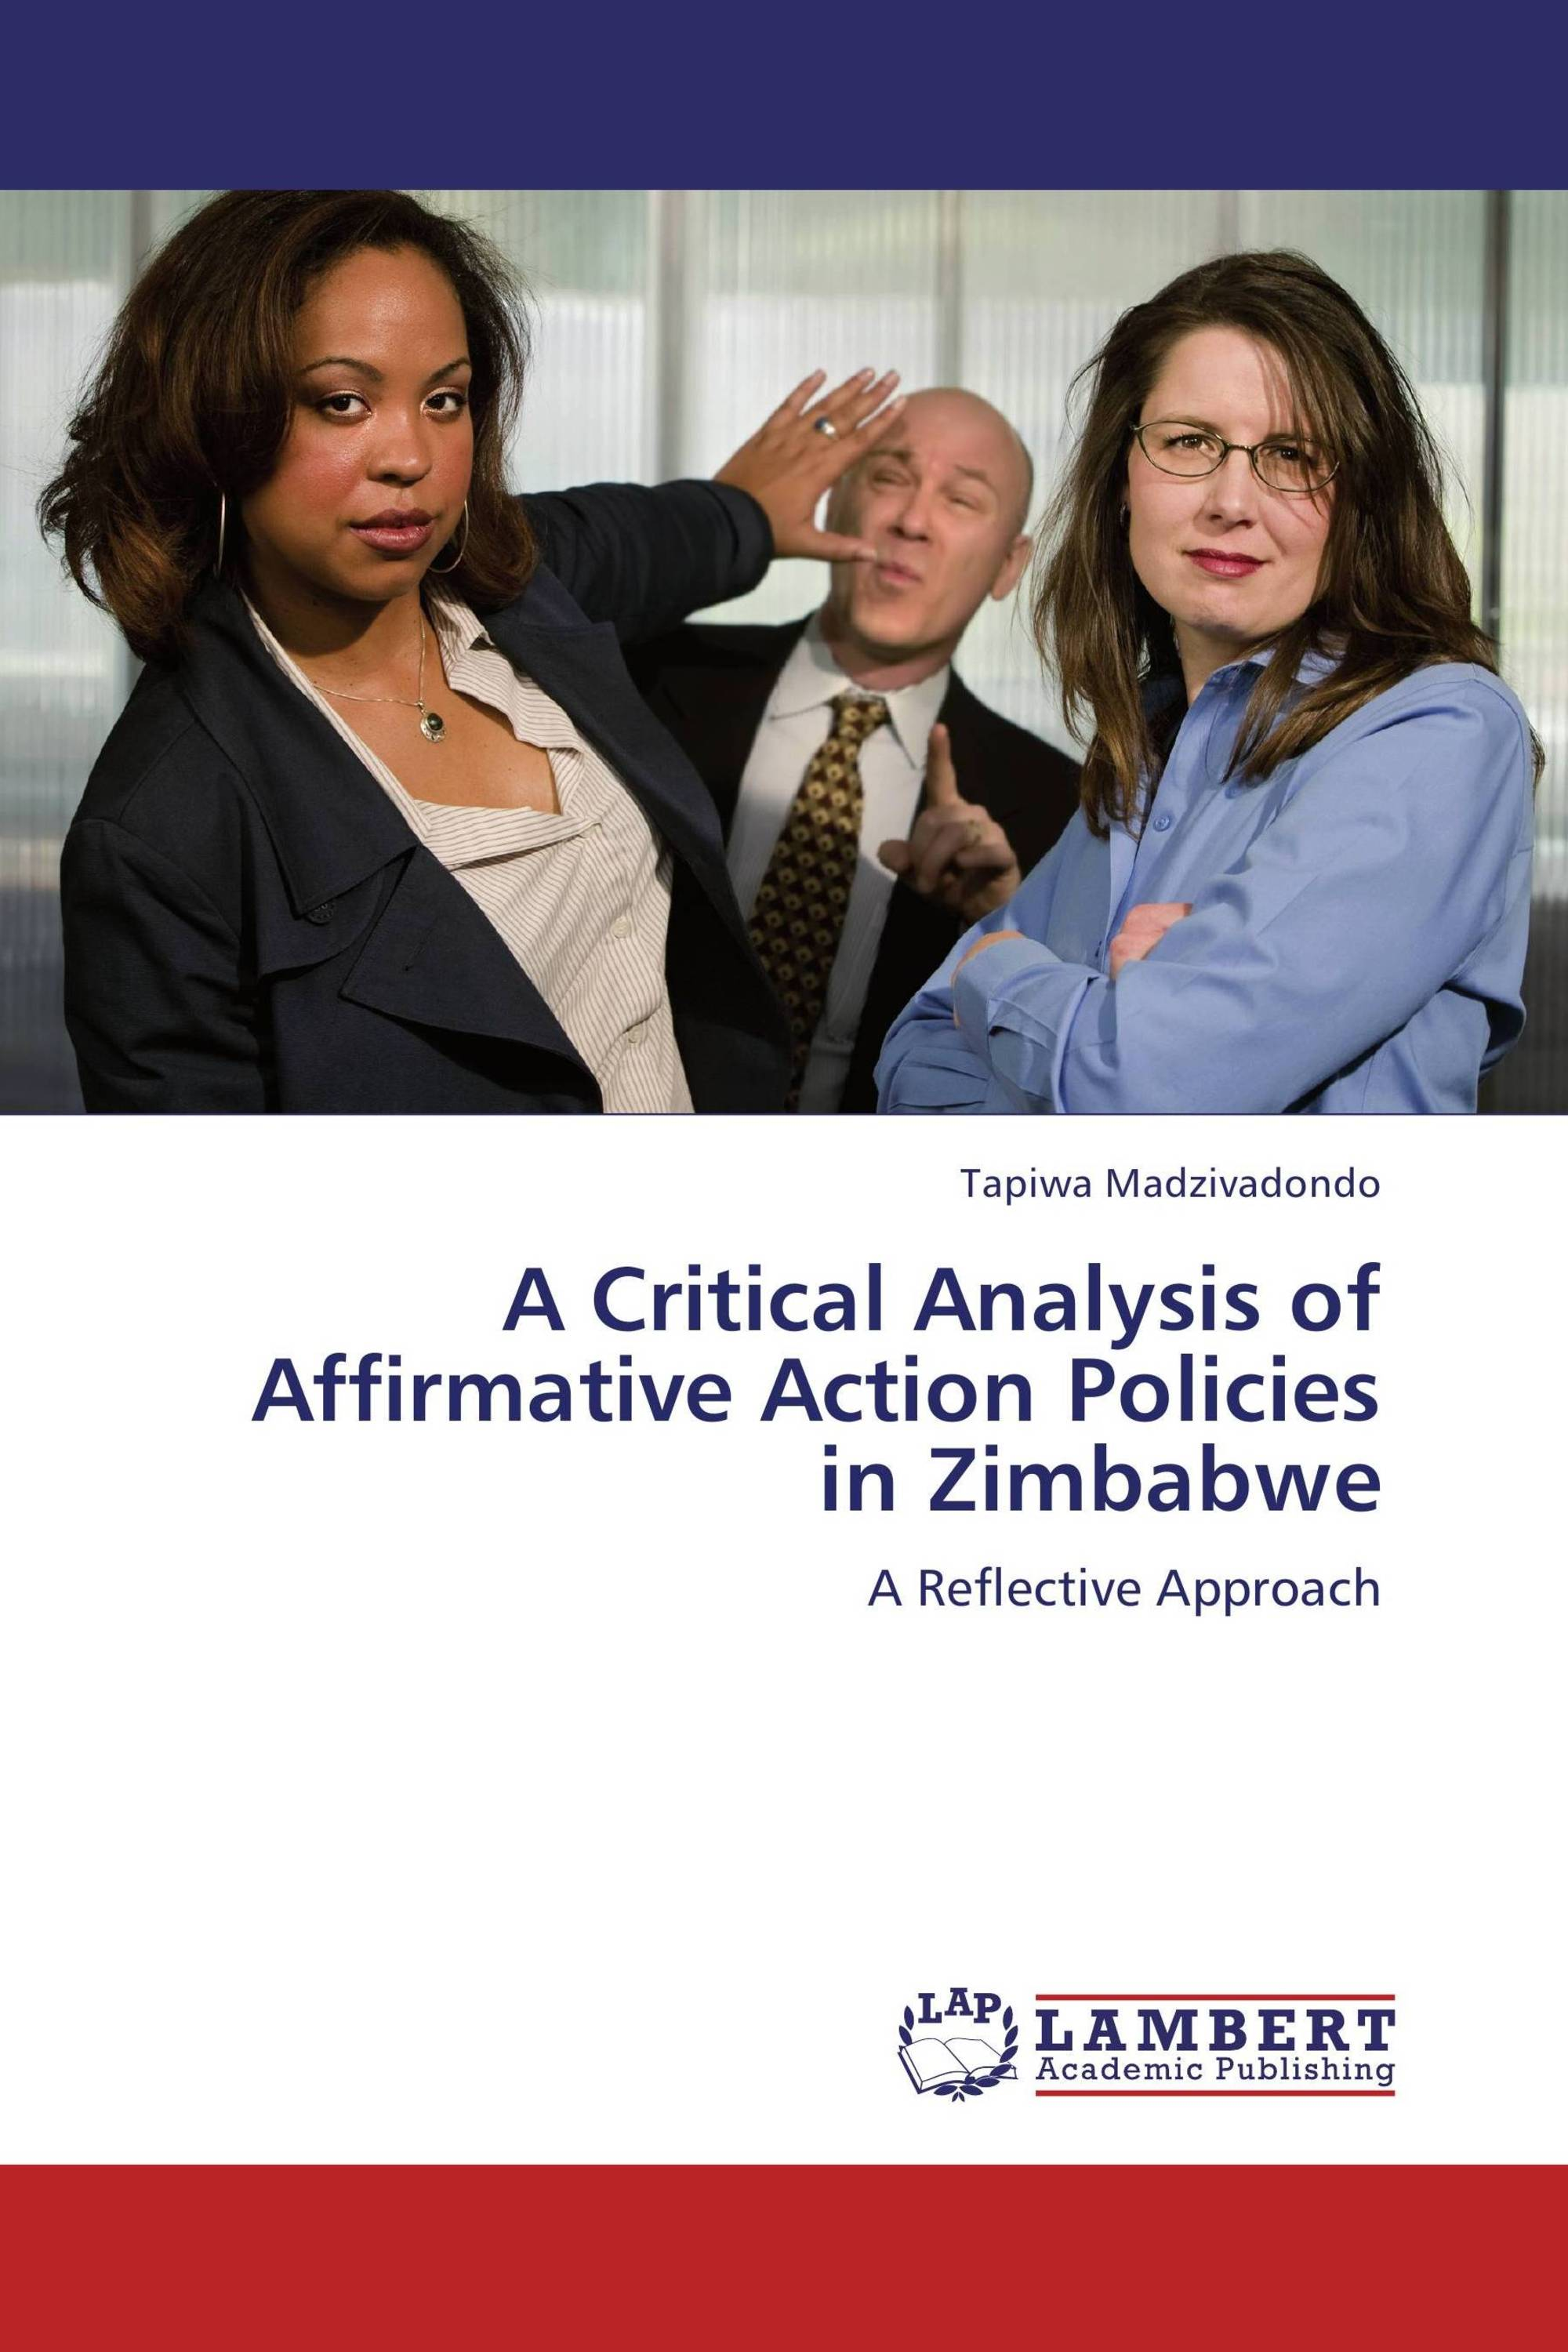 an analysis of affirmative action Affirmative action is one aspect of the federal government's efforts to ensure  of  an equal employment opportunity policy statement, an analysis of the current.